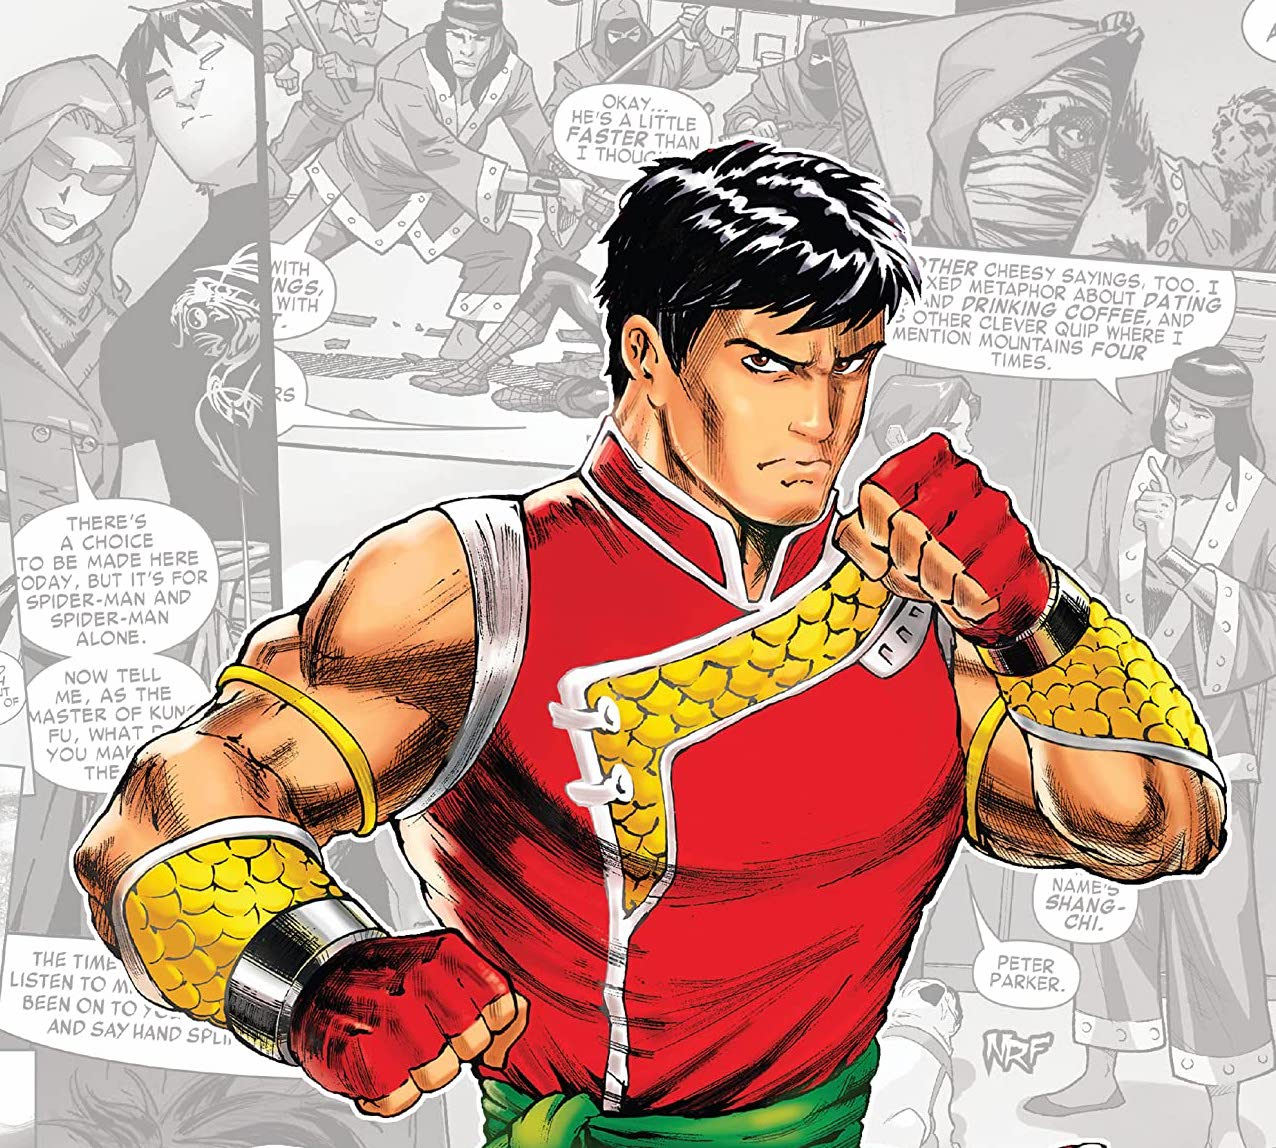 'Marvel-Verse: Shang-Chi' features a wise and patient hero